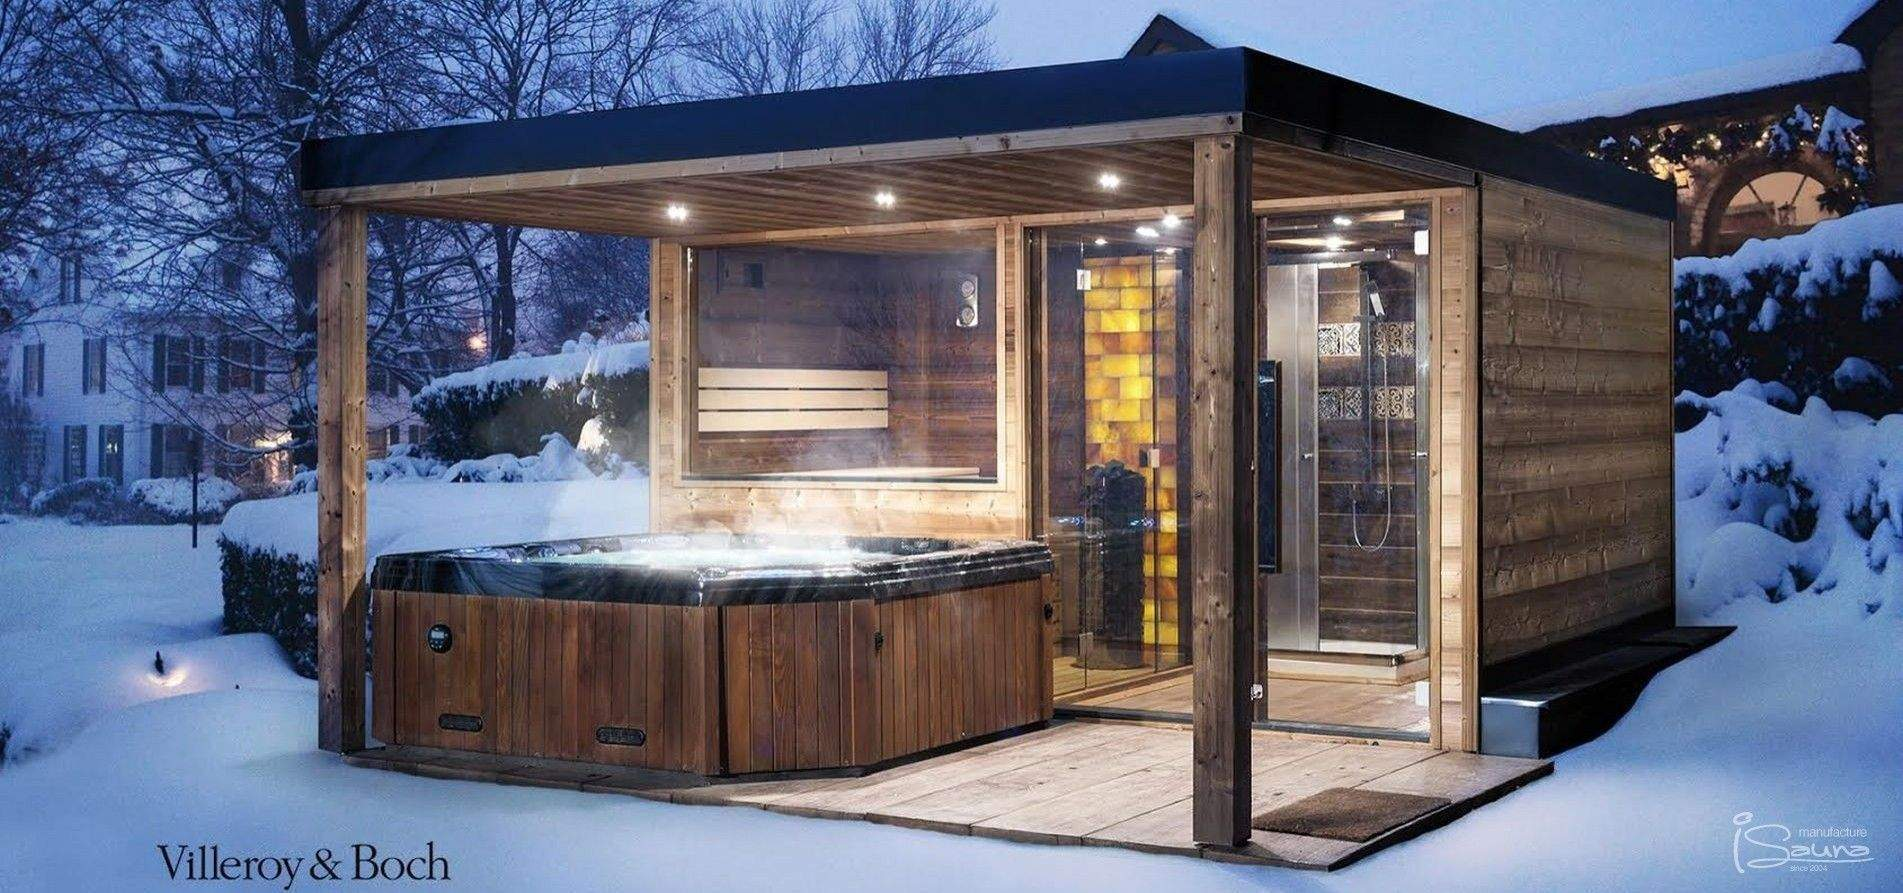 sauna im garten luxus garden sauna house with whirlpool in 2019 of sauna im garten